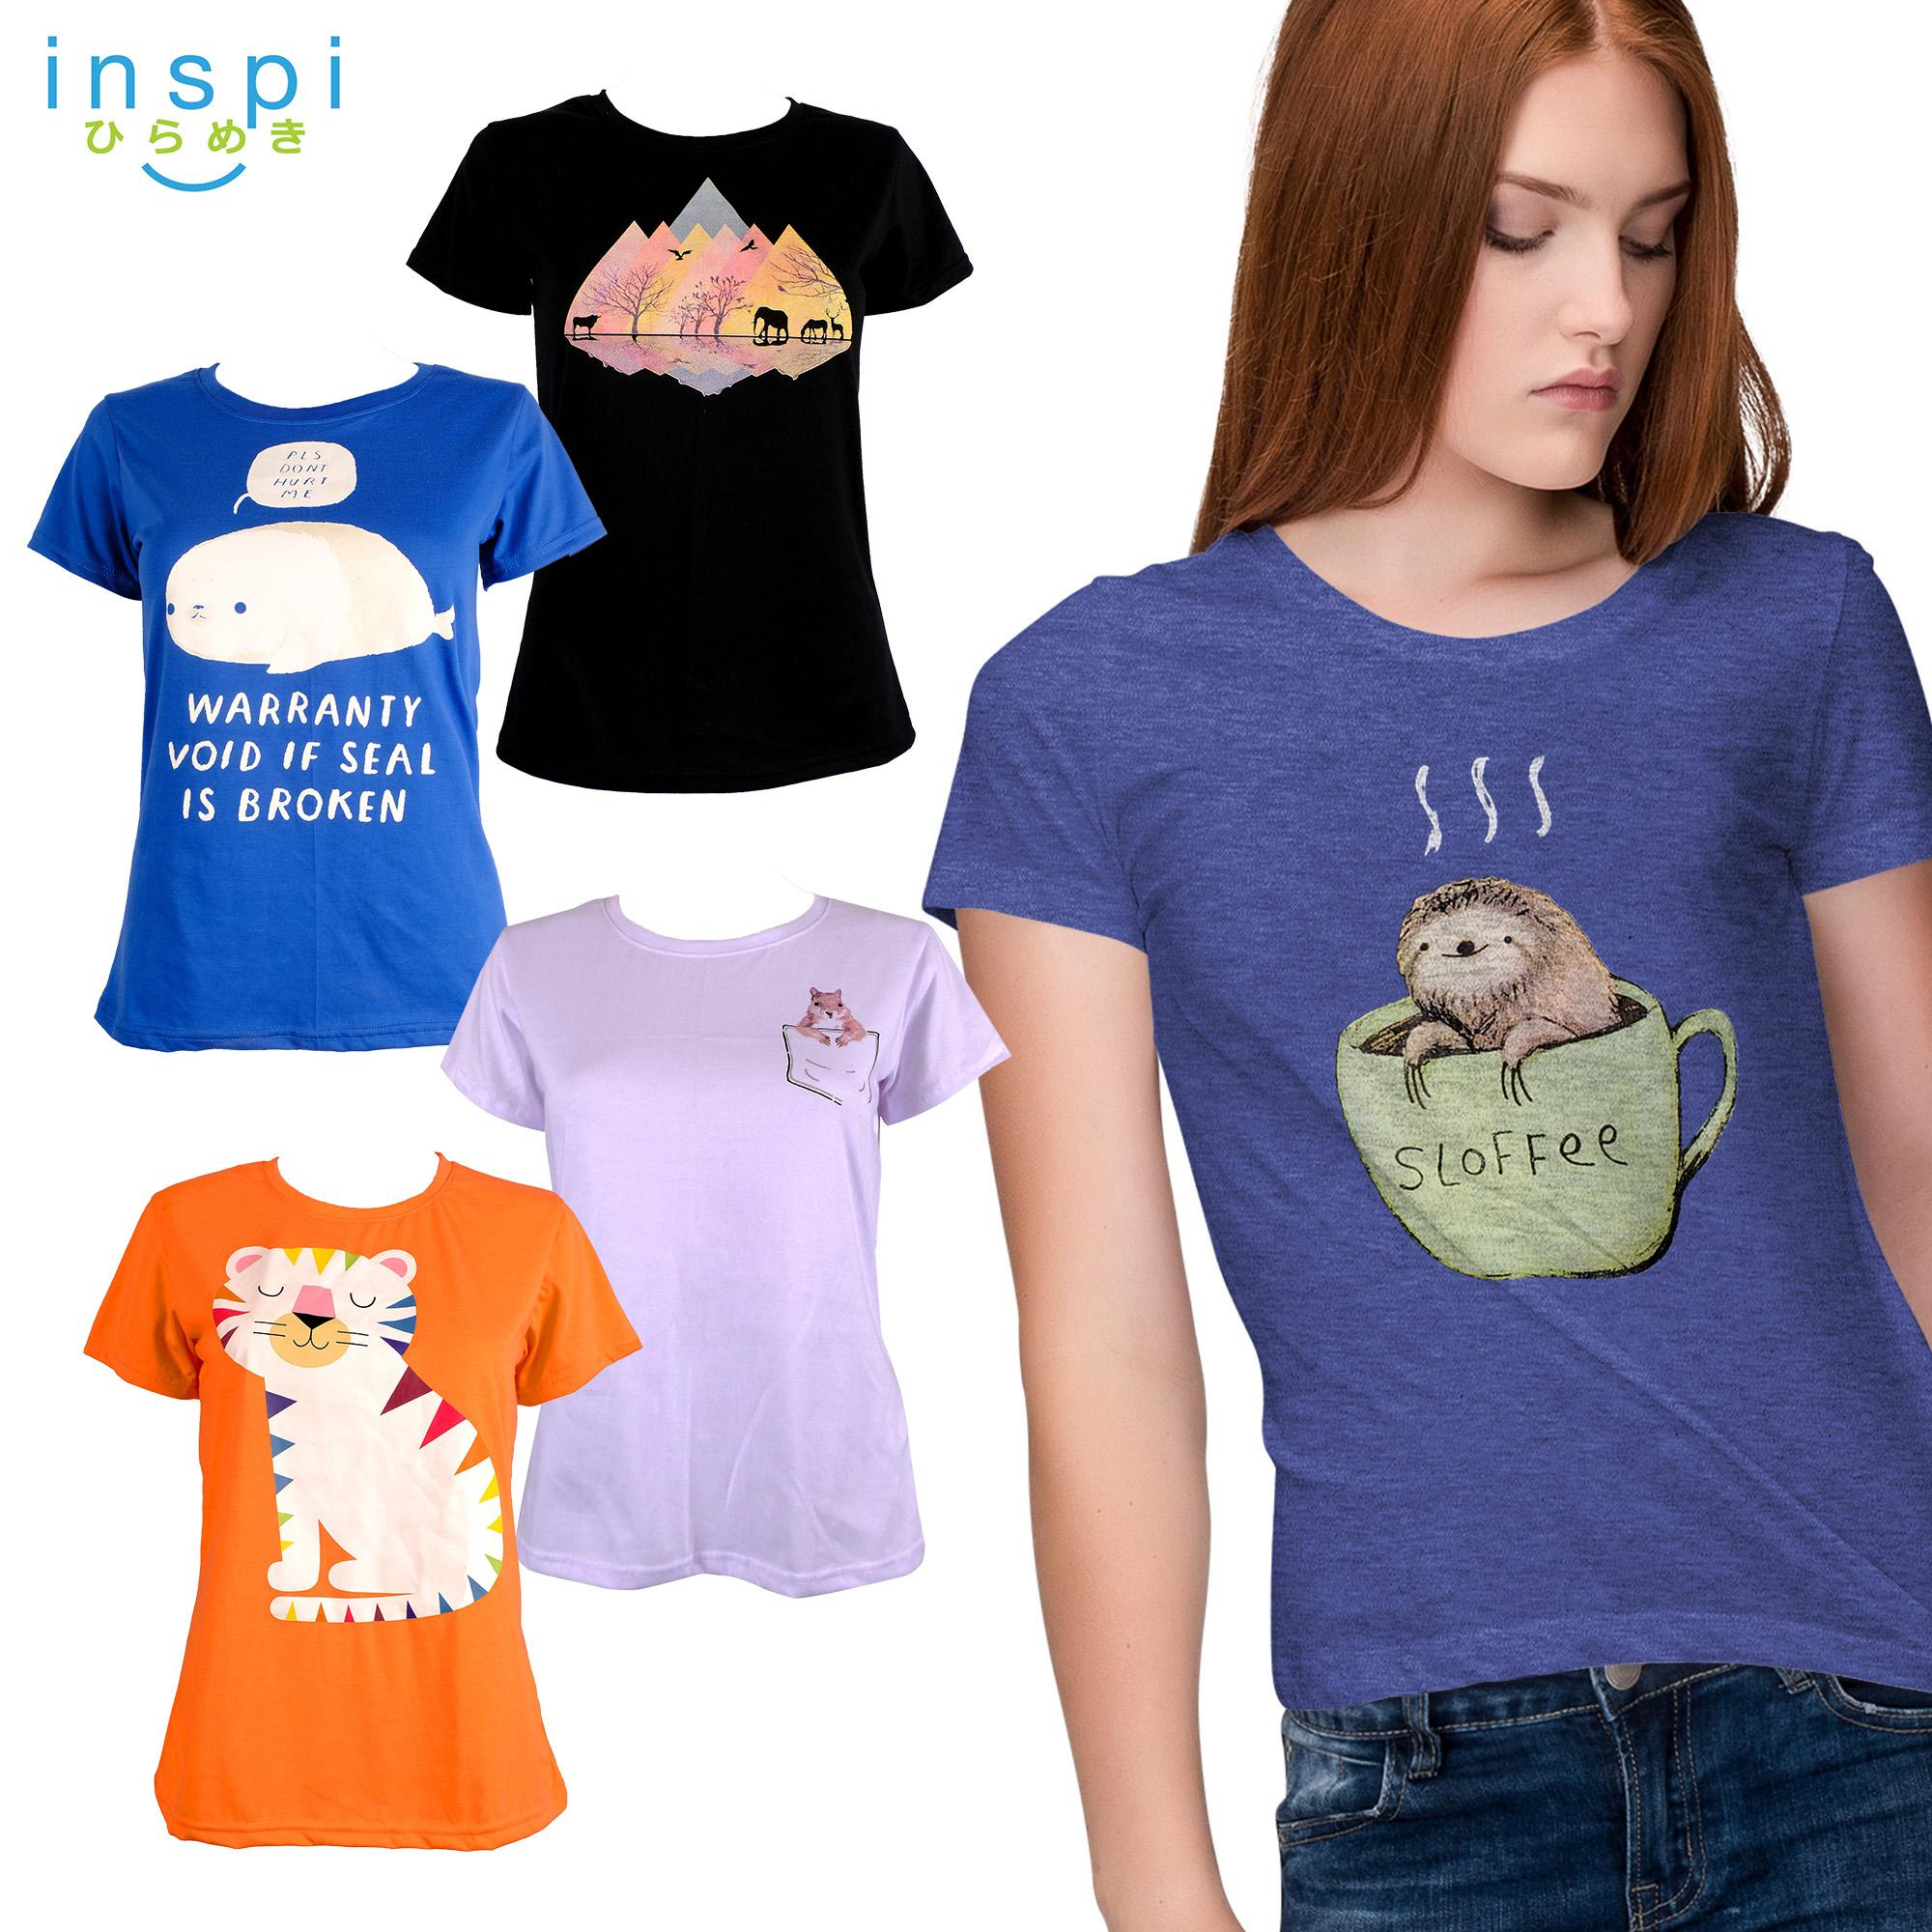 add3a99f INSPI Tees Ladies Pet Collection tshirt printed graphic tee Ladies t shirt  shirts women tshirts for